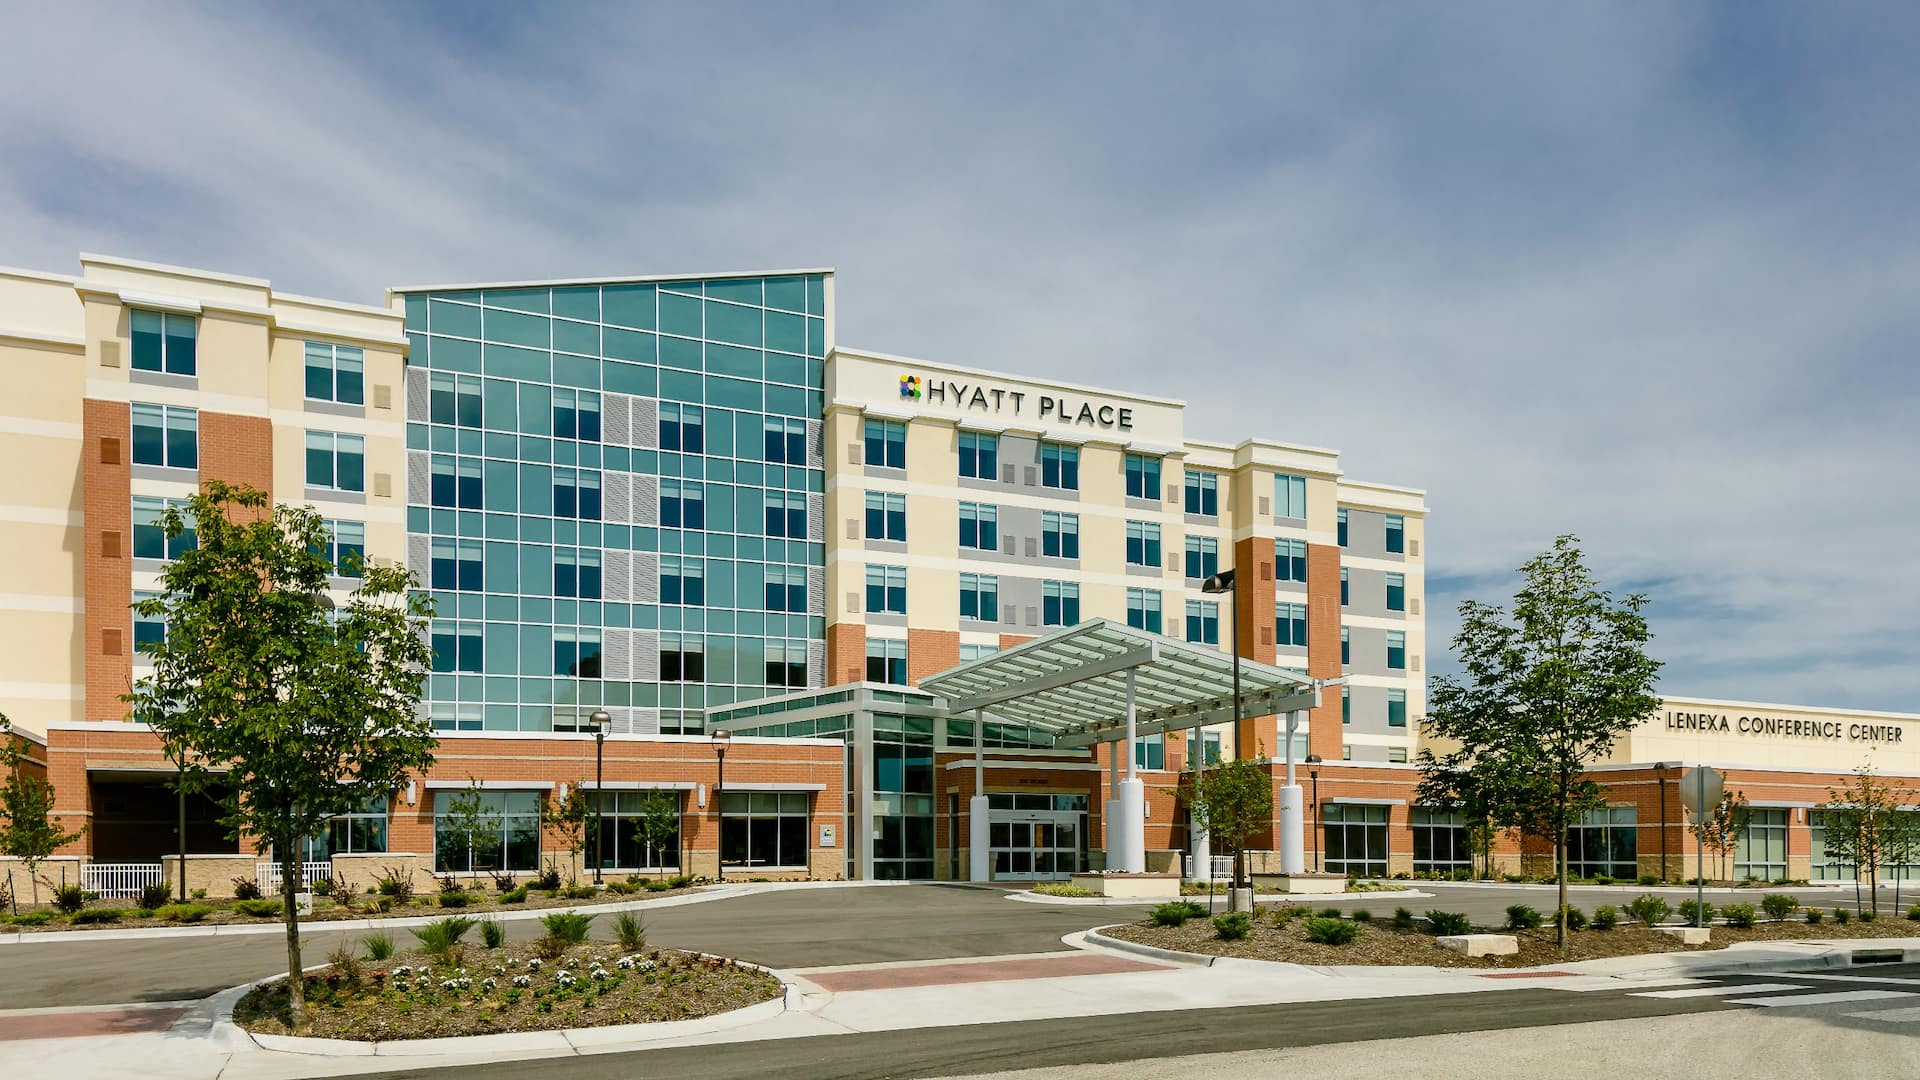 Hyatt Place Kansas City/Lenexa City Center Hotel Exterior